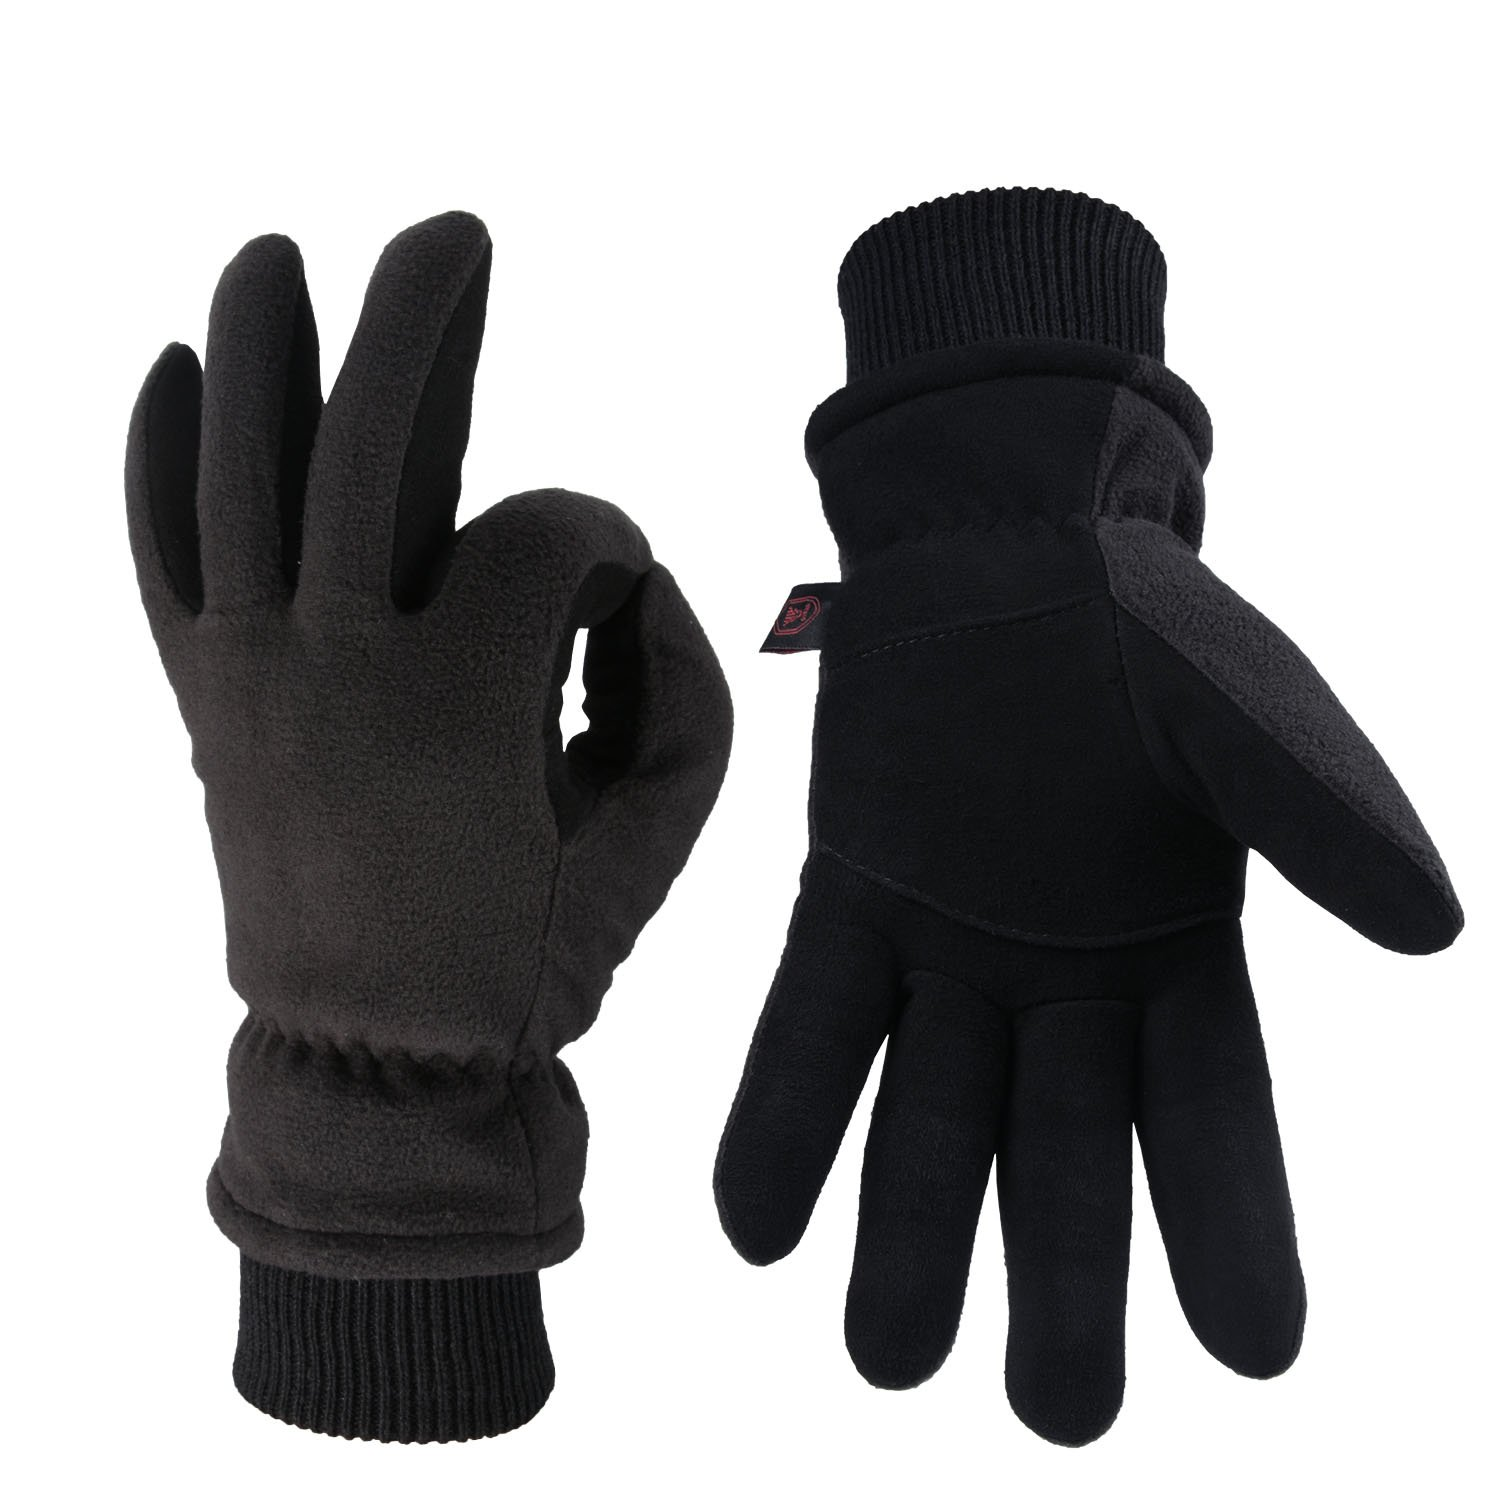 OZERO Winter Gloves -20°F Cold Proof Warm Glove - Windproof Deerskin Suede Leather and Insulated Polar Fleece for Women and Men SHENZHEN HONGFUYA TRADE Co. Ltd